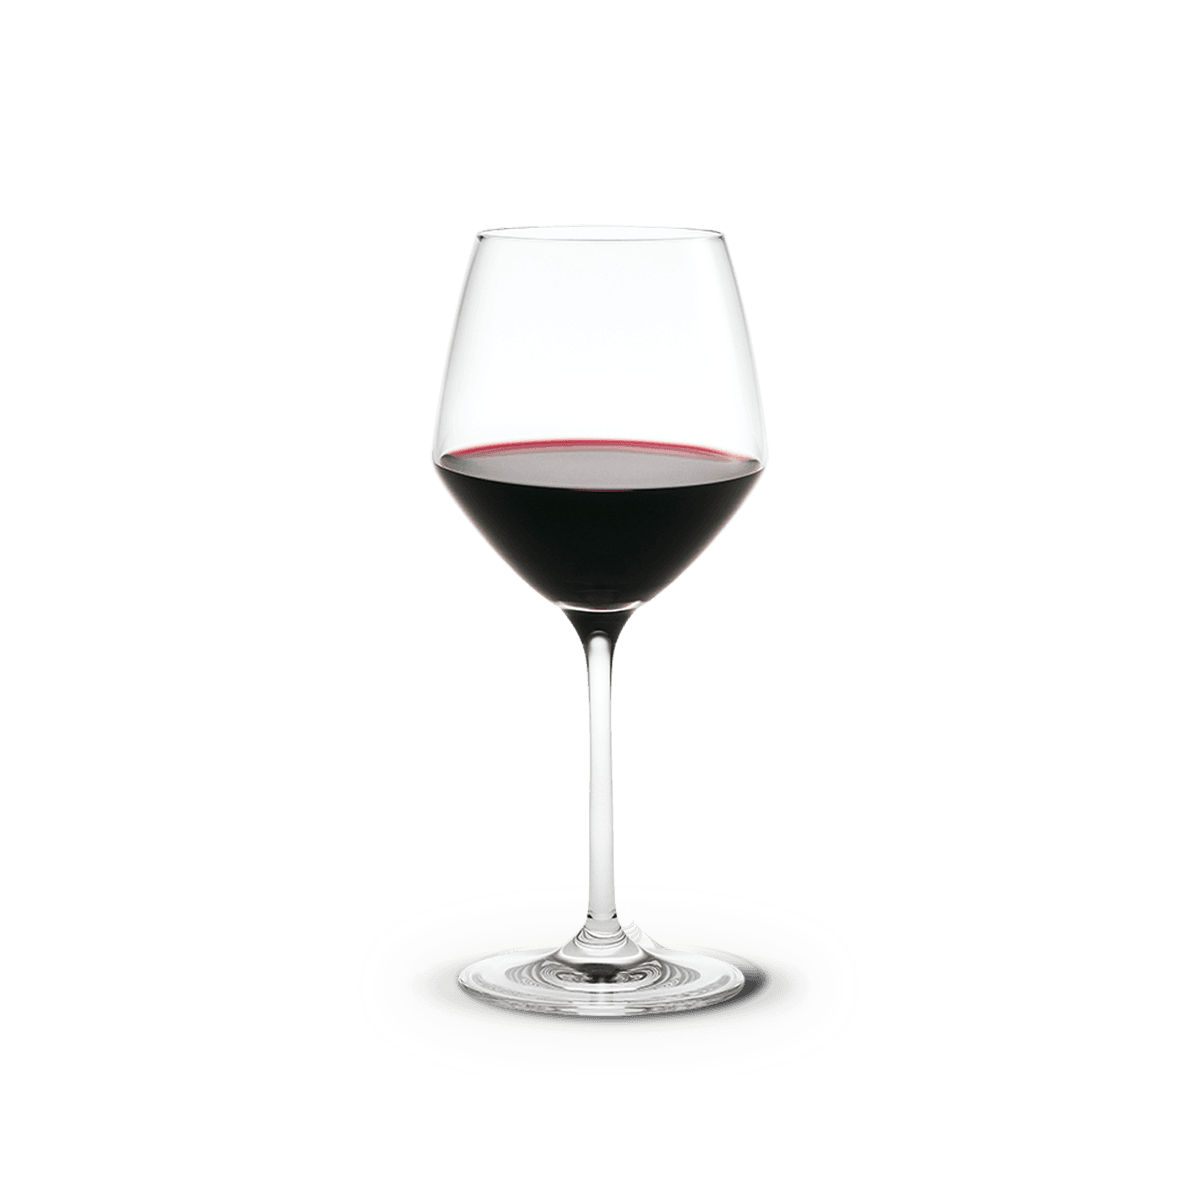 Google Image Result for http://images.rosendahl.dk/products/480/241/1/4802411/v/4802411/XXLarge/perfection-red-wine-glass-clear-43-cl-1-pcs-perfection-1500x1500.png